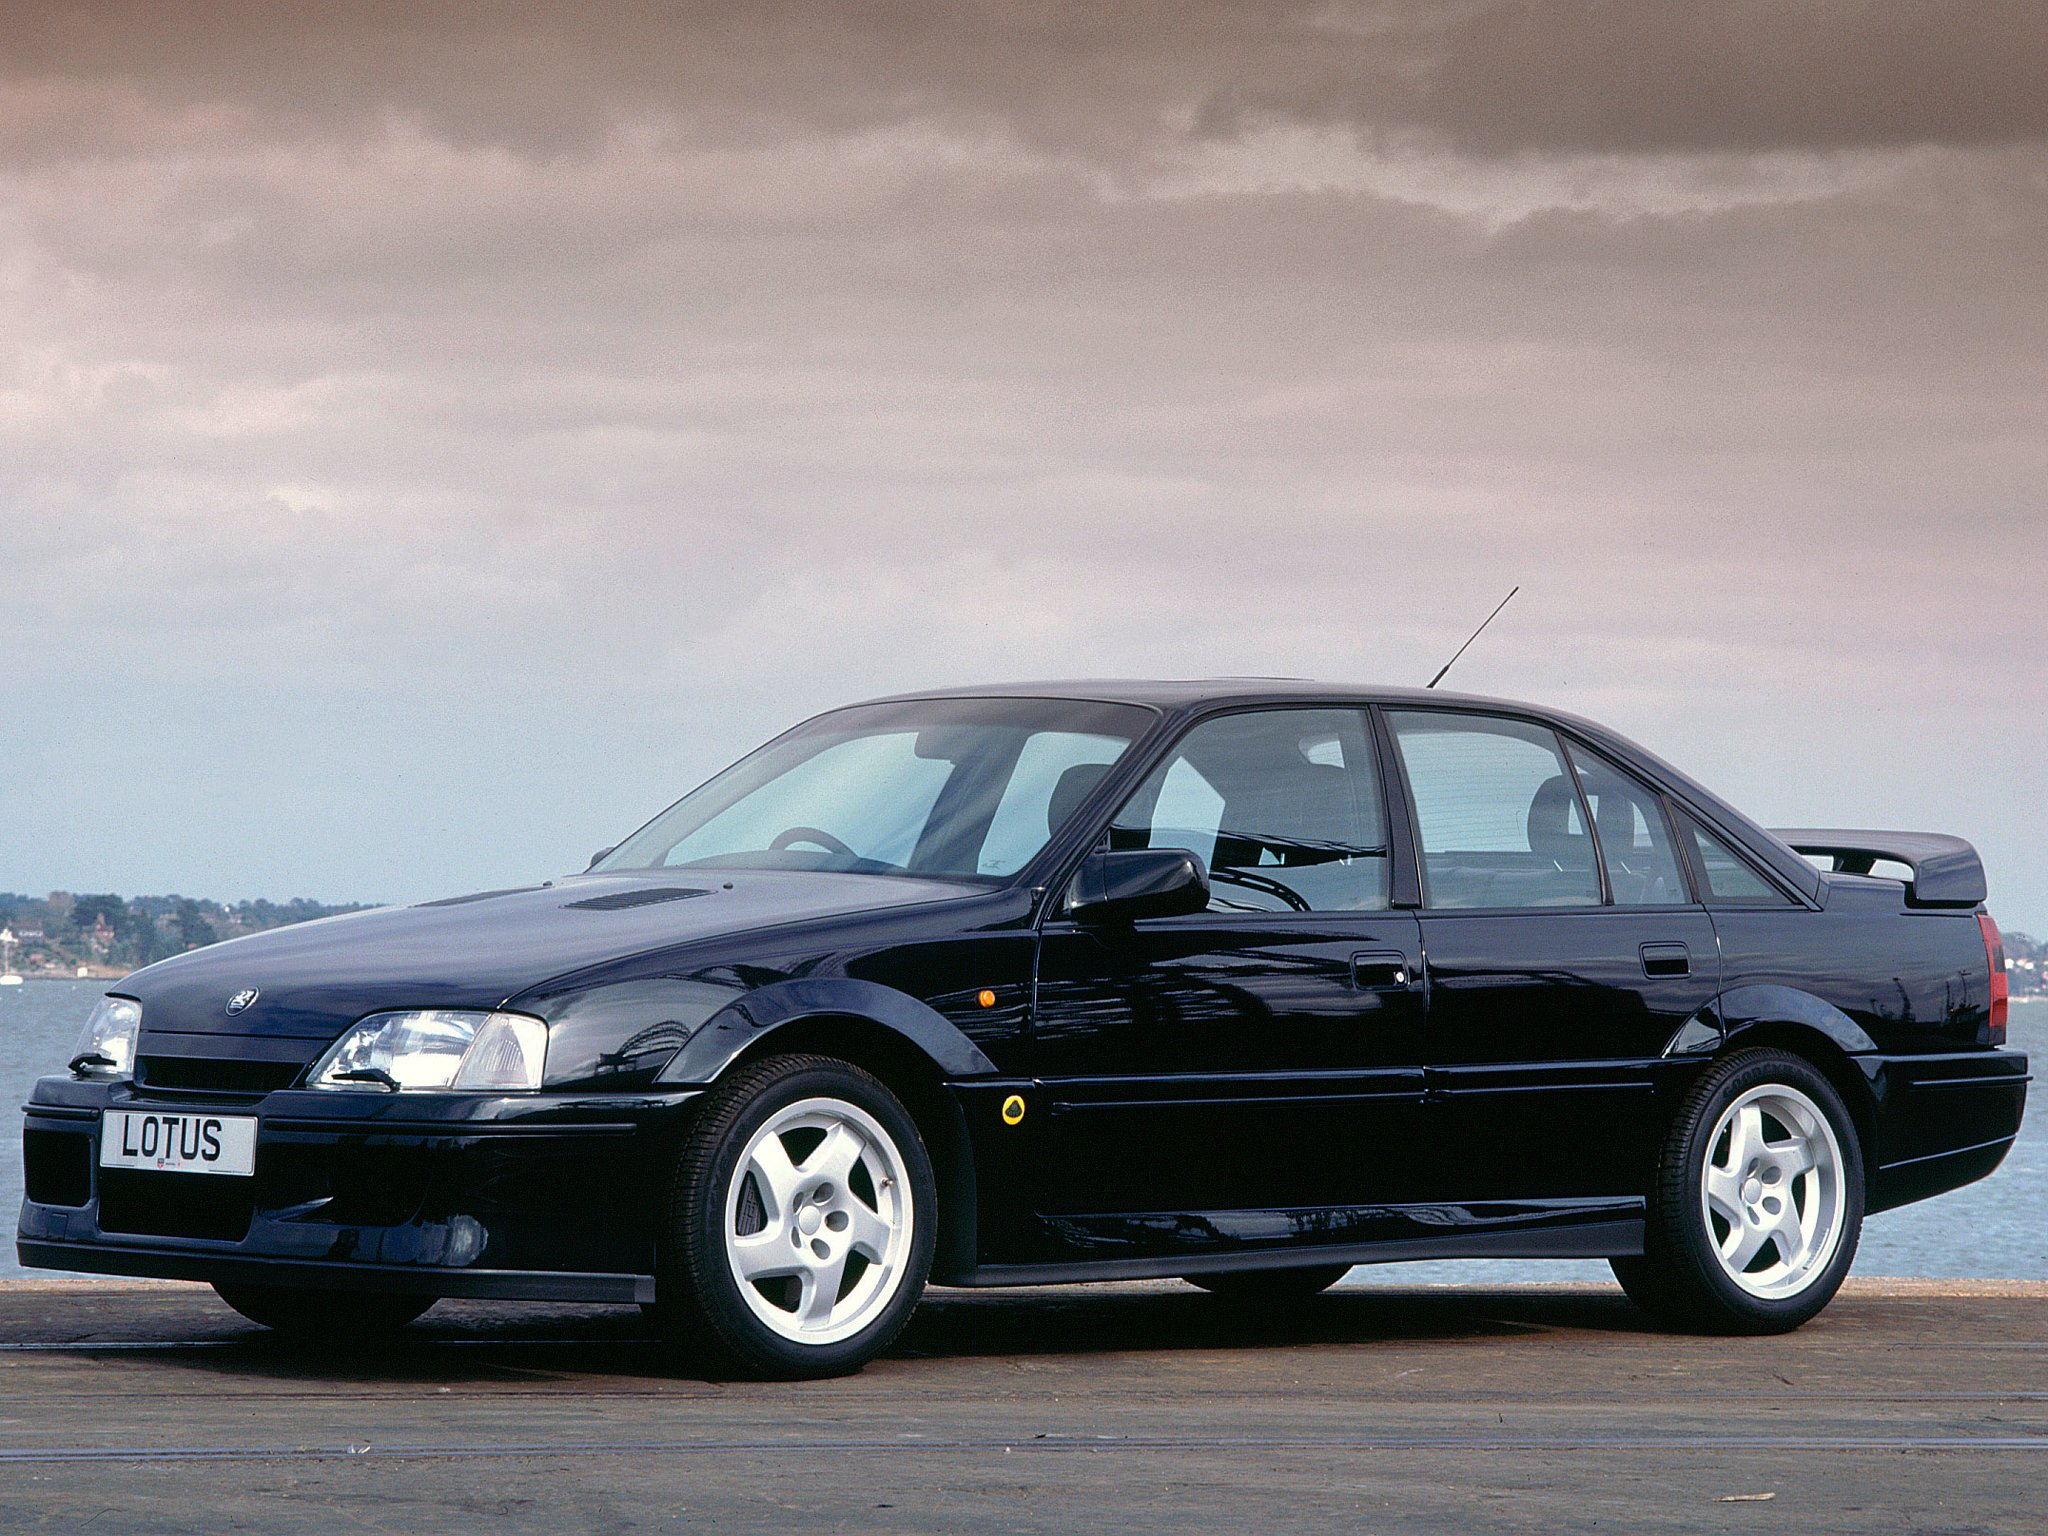 1990 92 vauxhall lotus carlton fa wallpaper 2048x1536 298265 wallpaperup. Black Bedroom Furniture Sets. Home Design Ideas